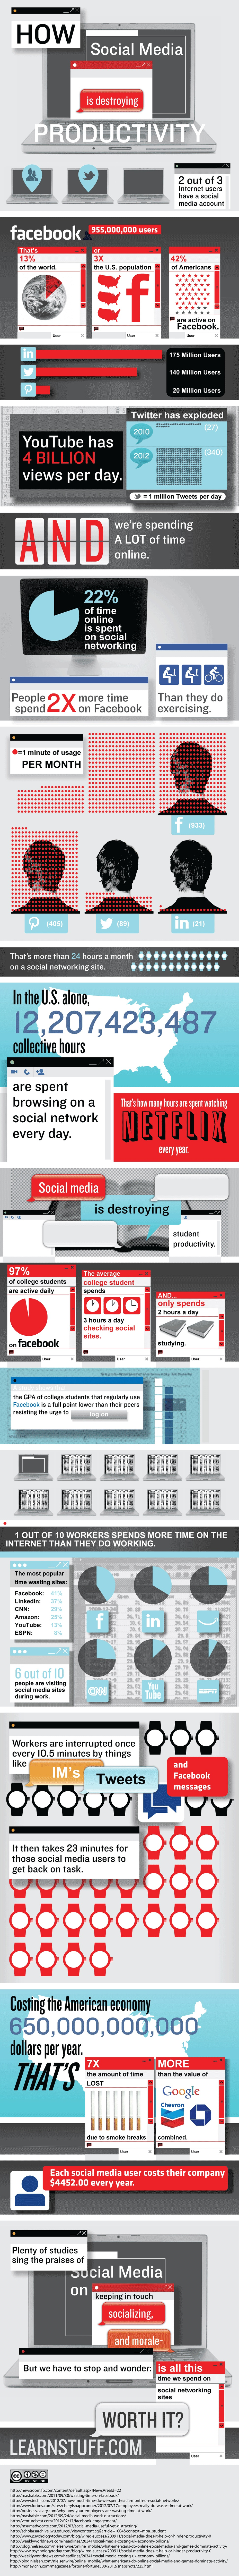 Social Media Distractions Cost U.S. Economy $650 Billion [INFOGRAPHIC]